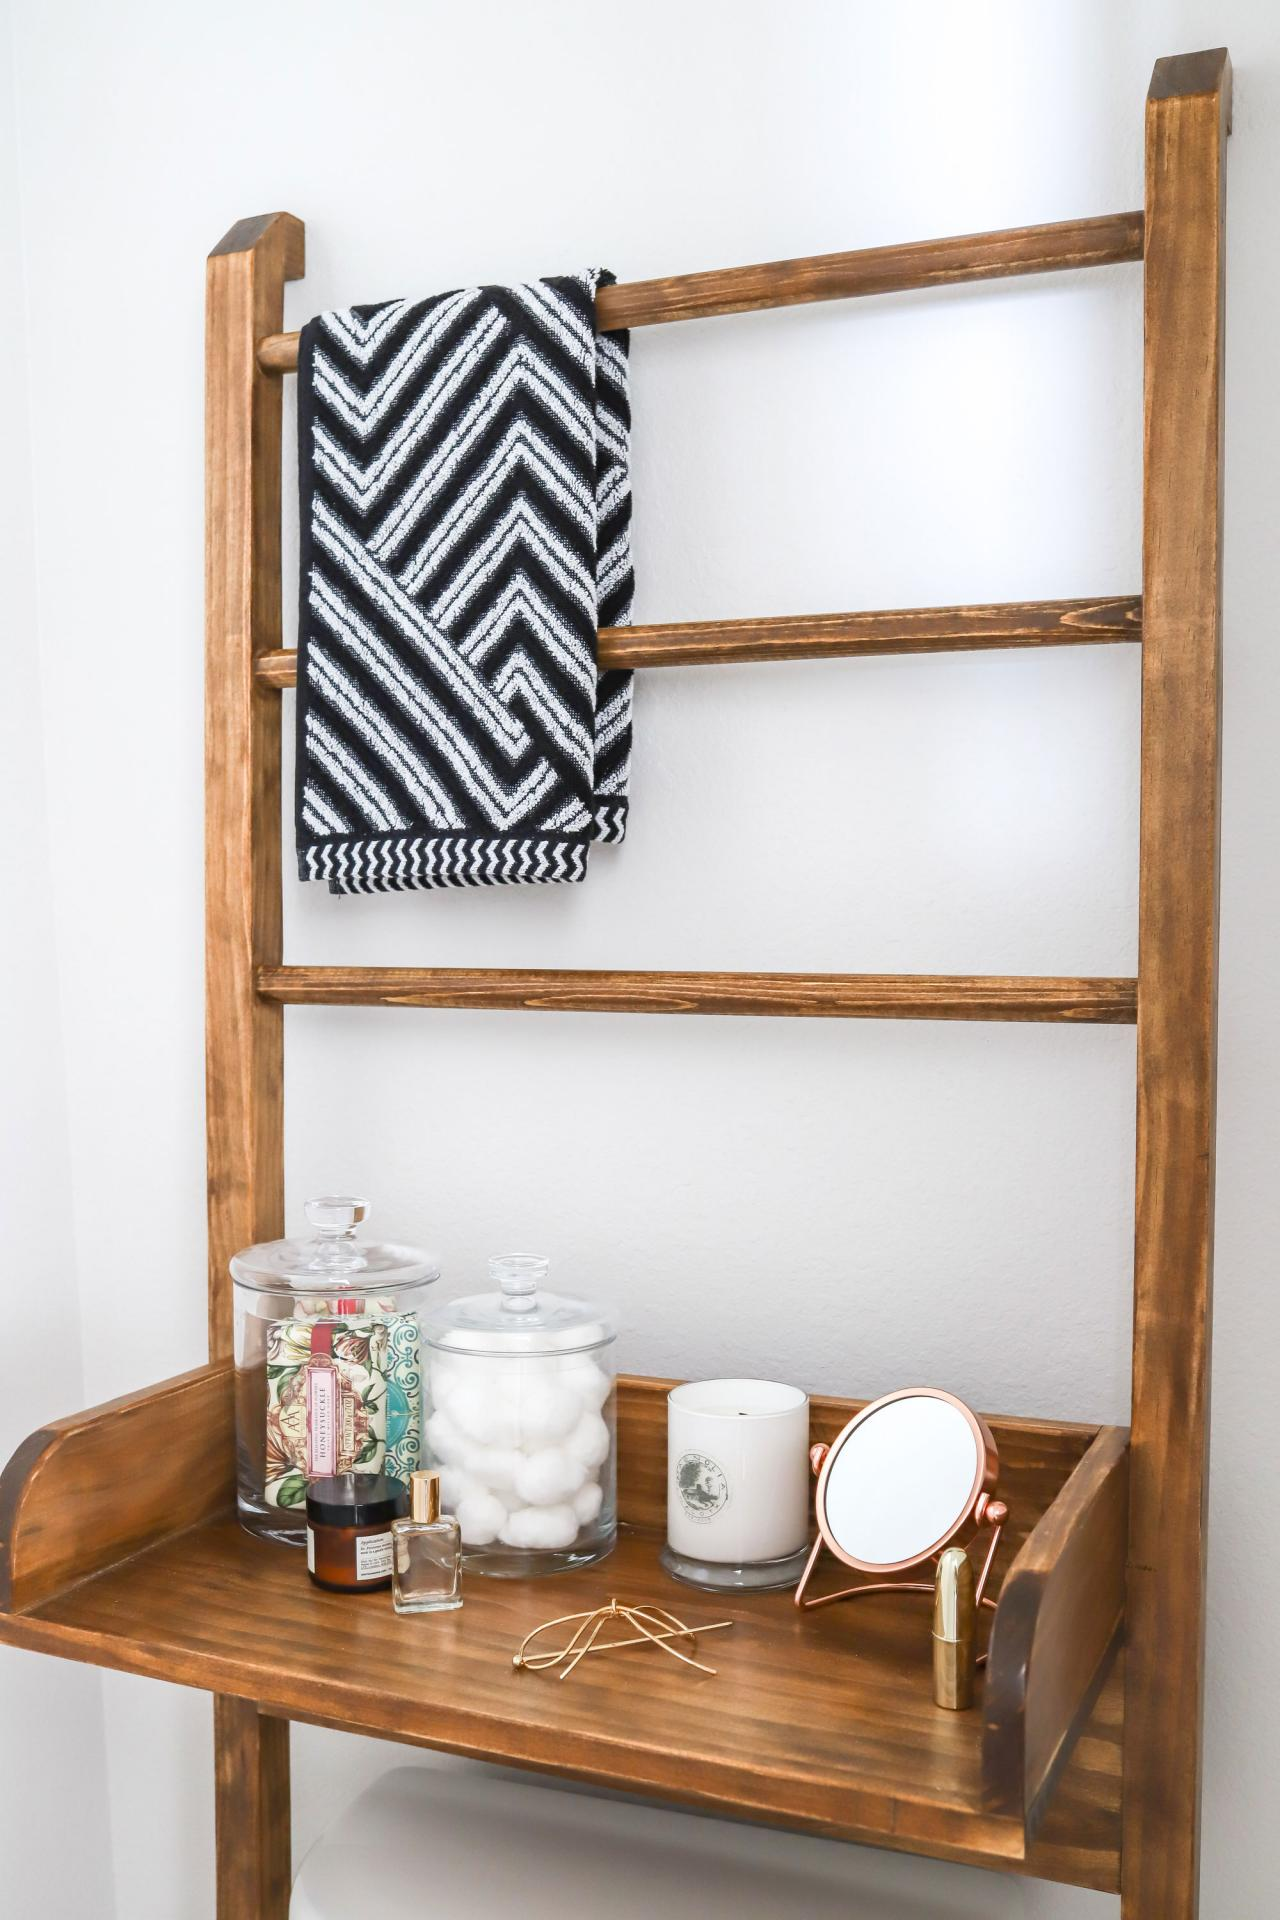 DIY Leaning Ladder Shelf for the Bathroom  Room Makeovers to Suit Your Life  HGTV